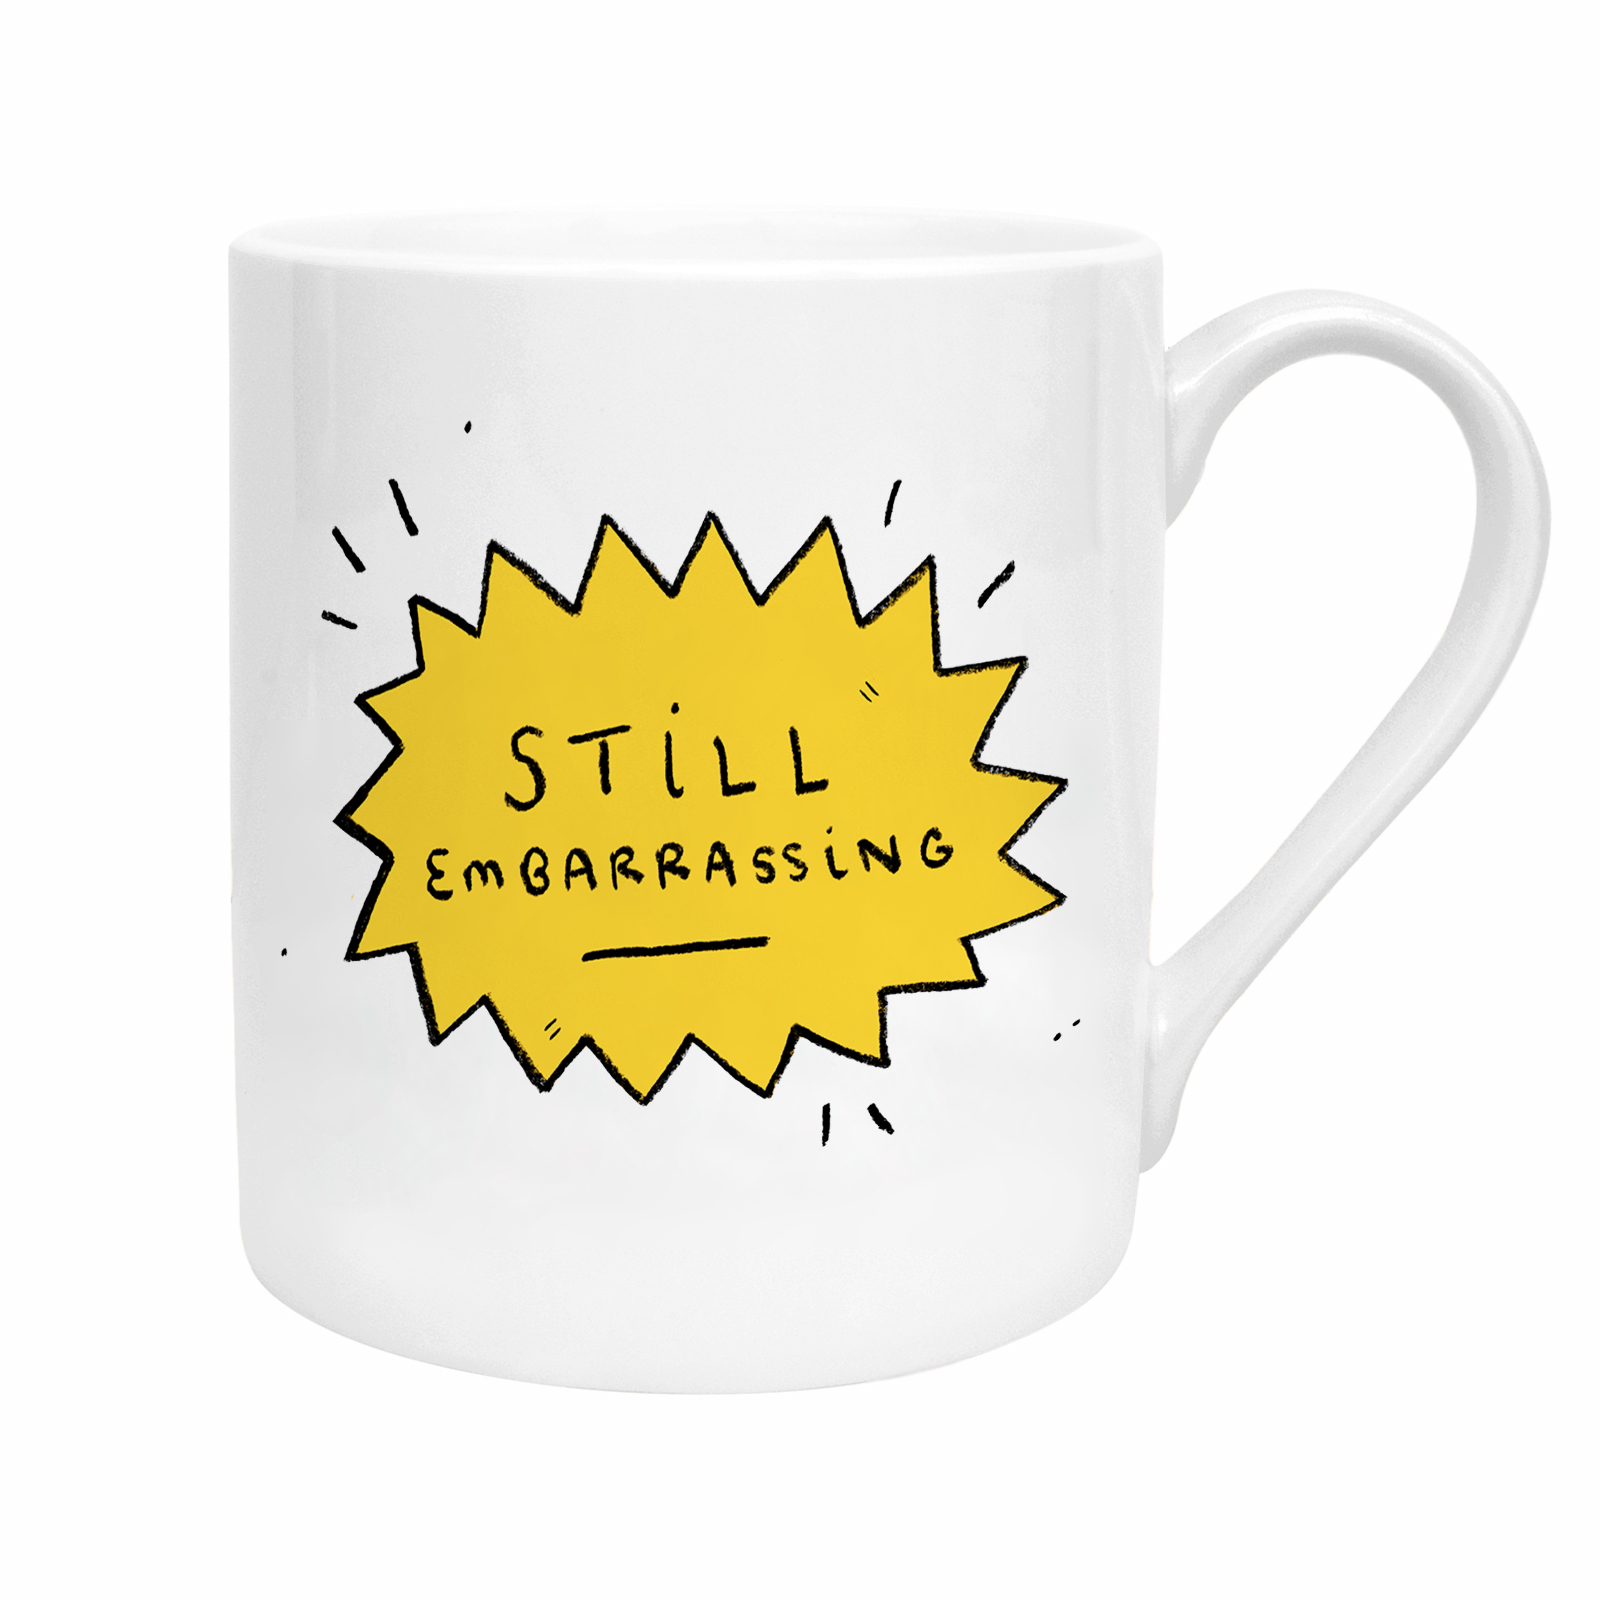 STILL EMBARRASSING MUG - Does your Mum still get out those embarrassing baby pics at EVERY event even though you've told her not to? Why not give your mum the badge of honour in the form of this mug from Amy Lesko.